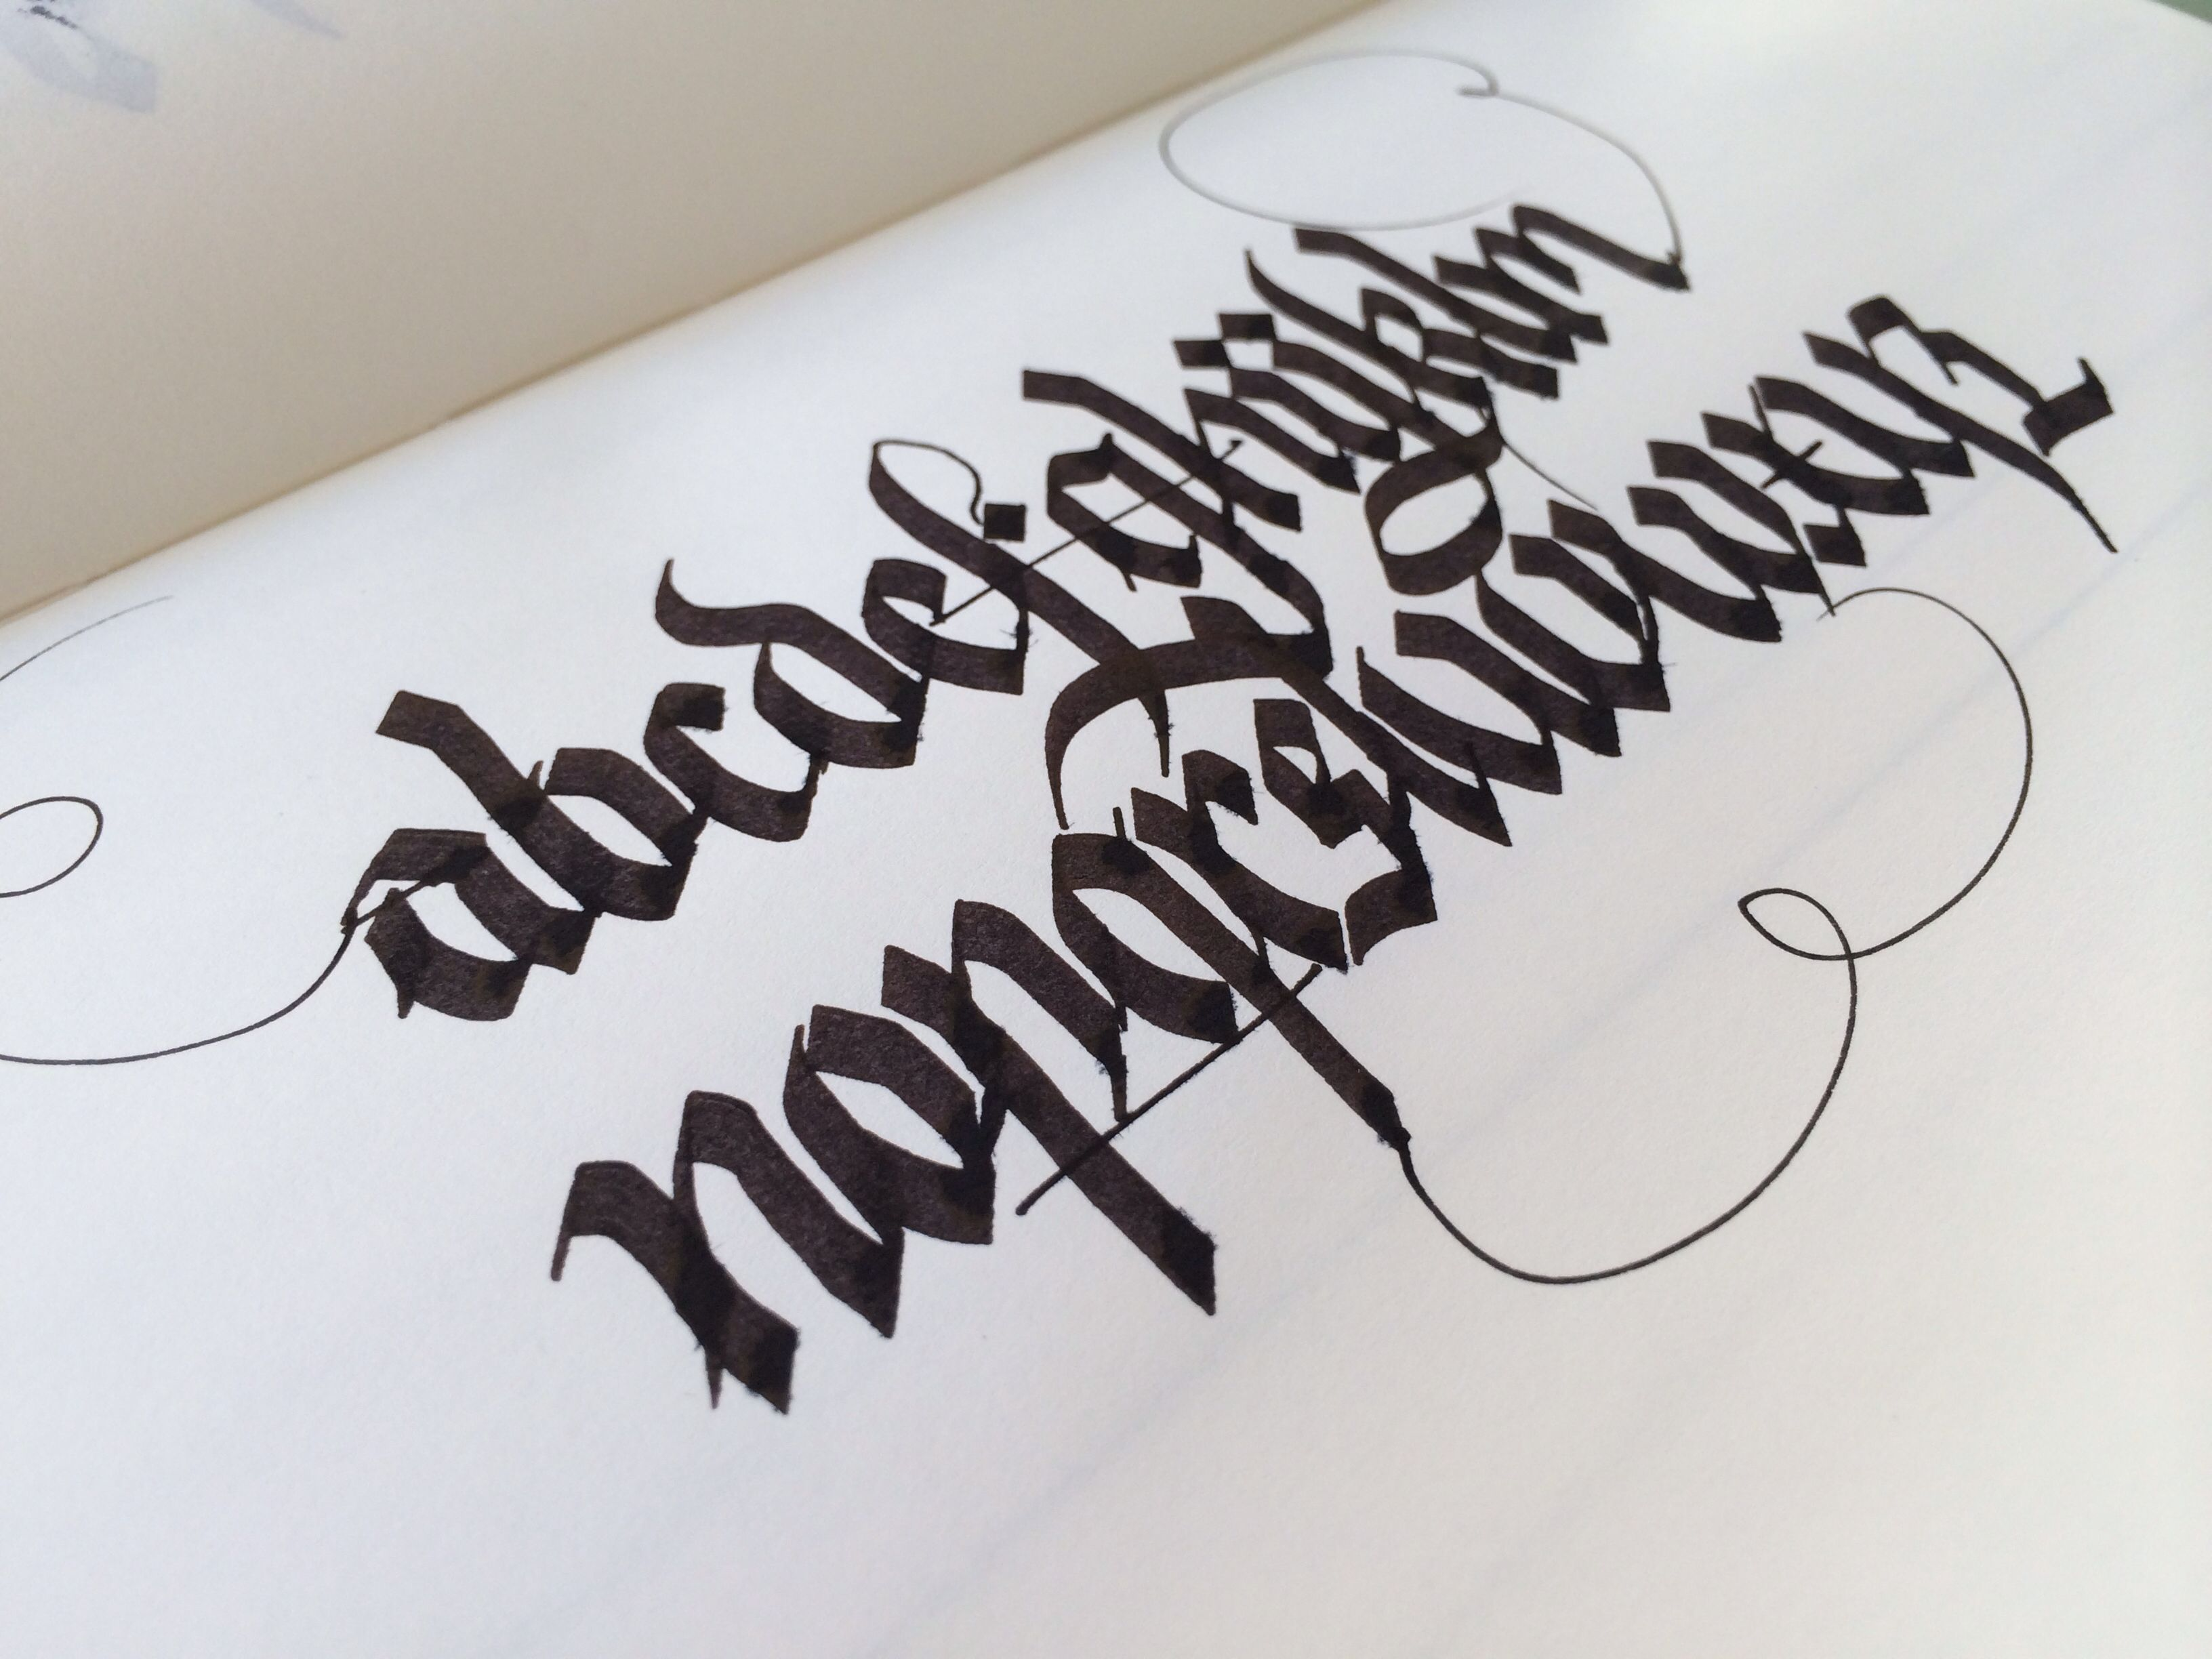 Pin By Andrew Kelly On Calligraphy Fraktur Blackletter